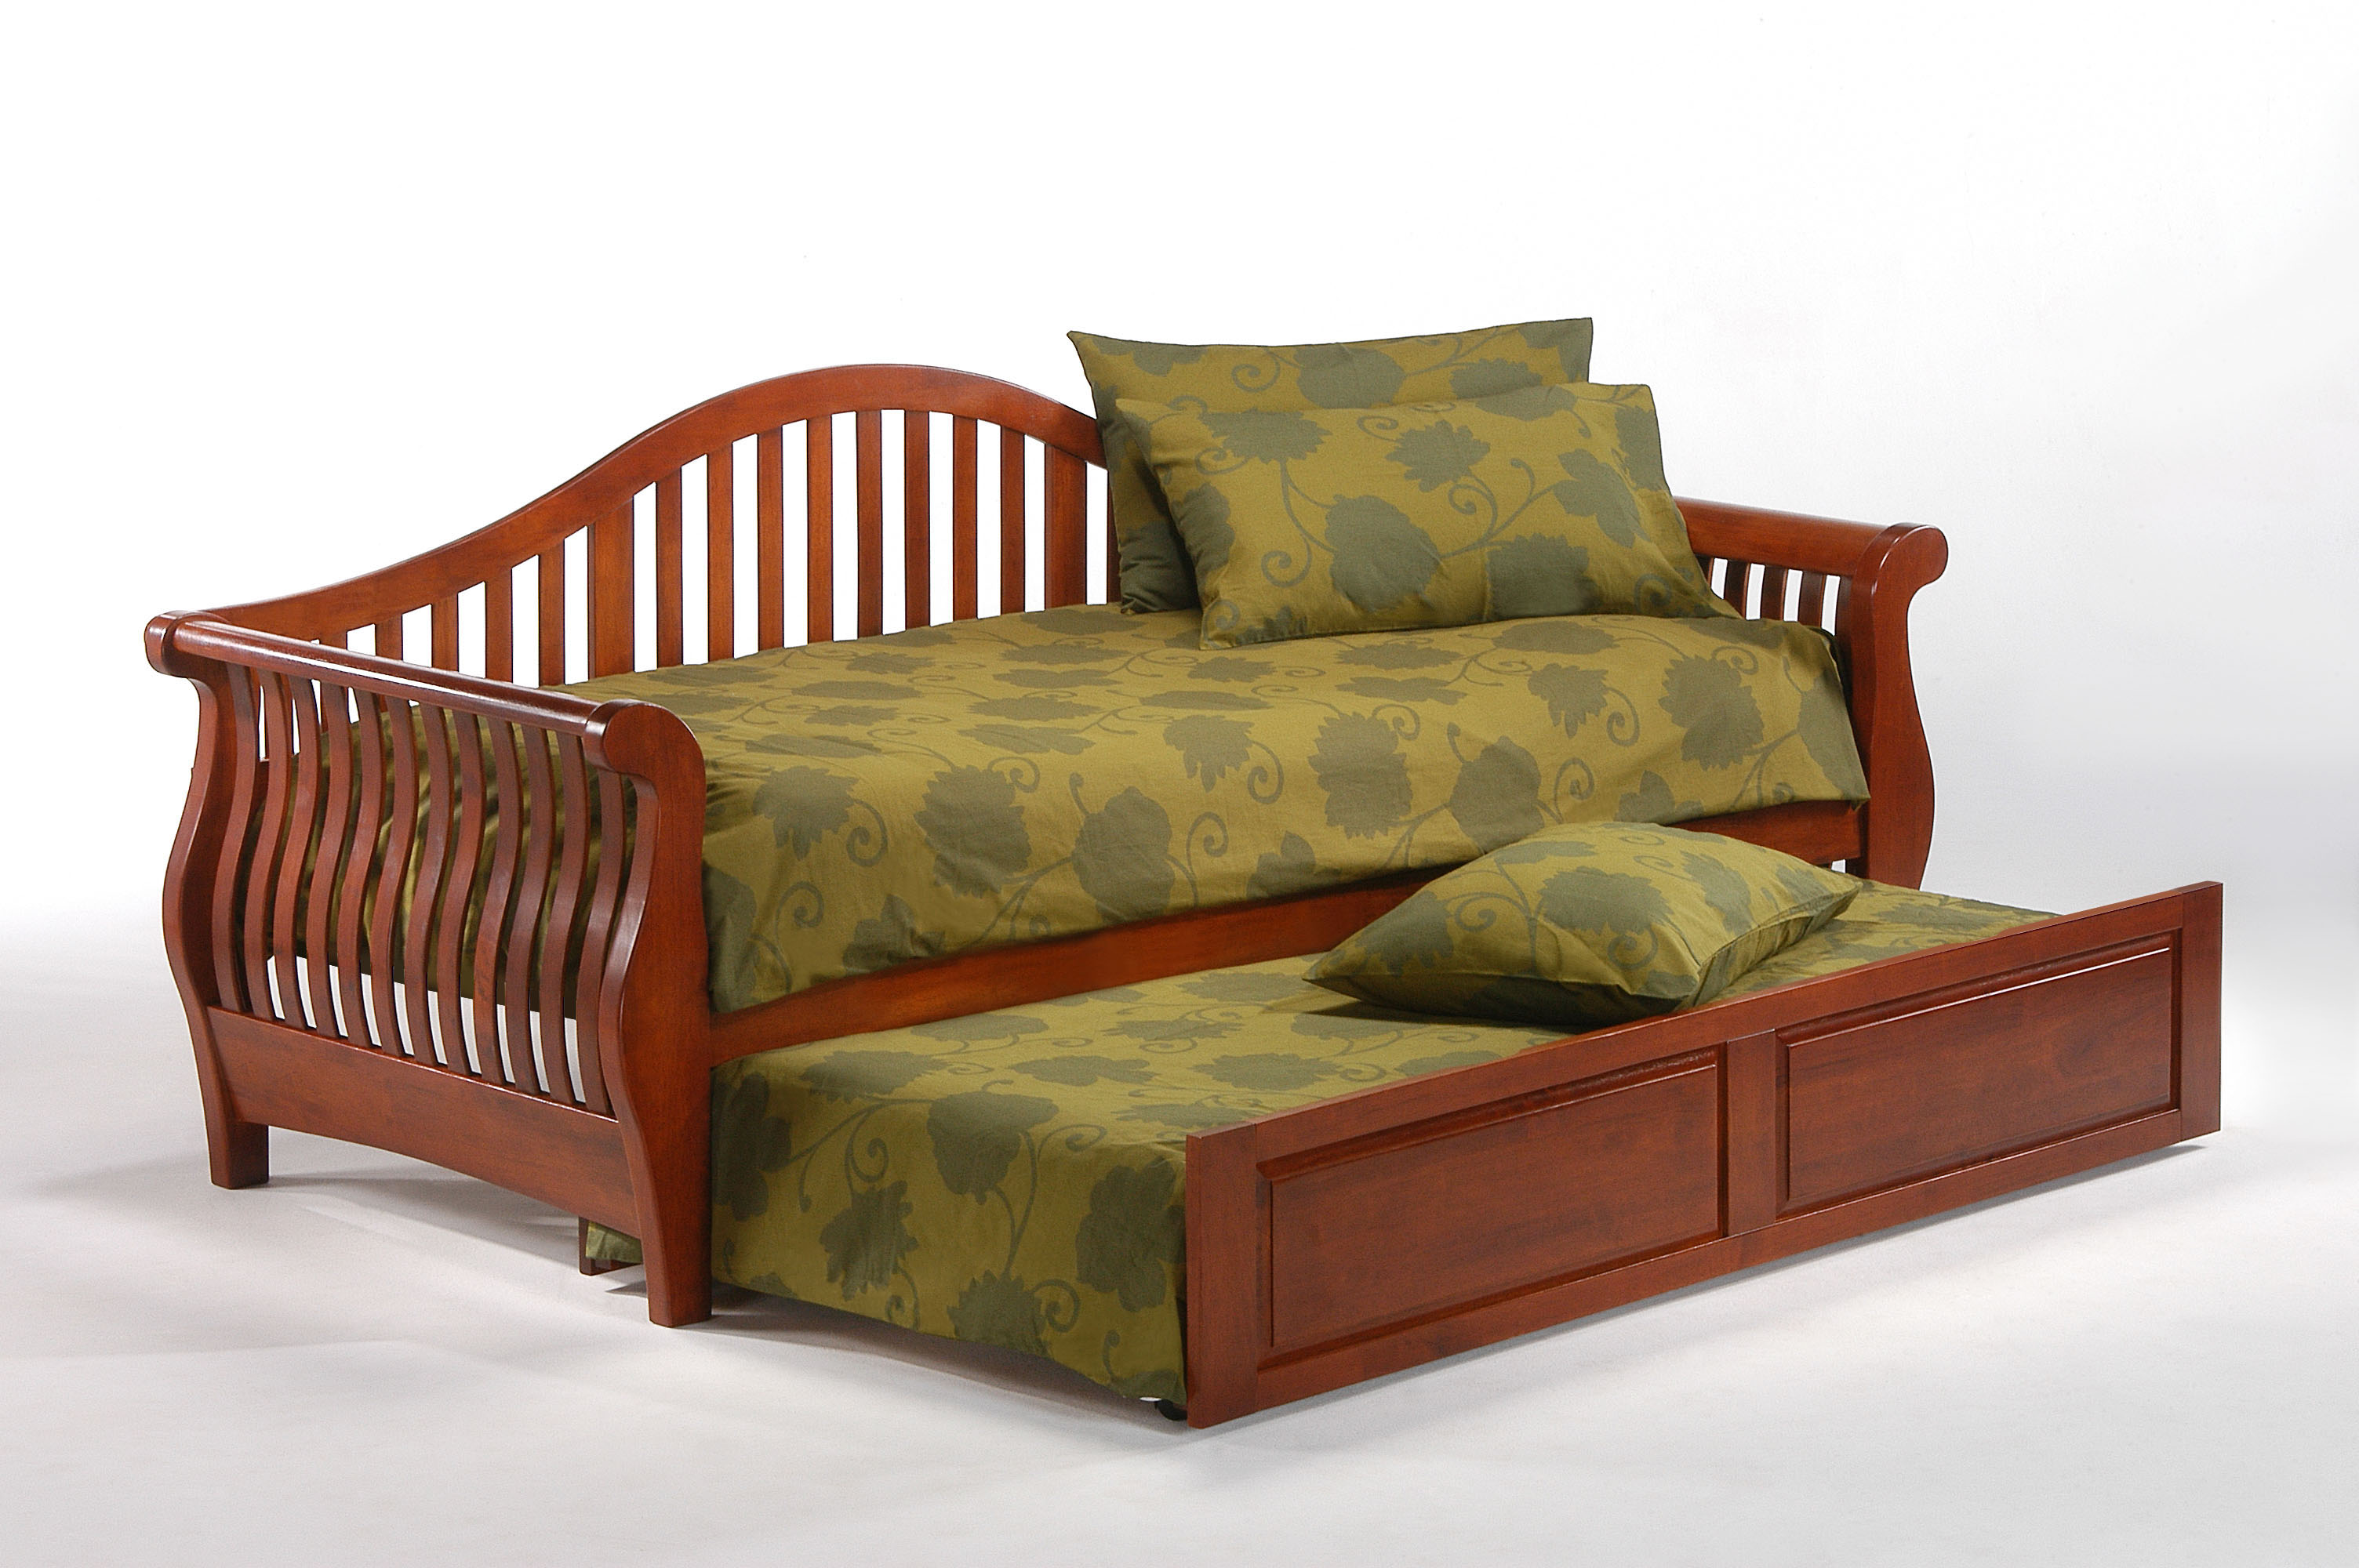 nightfall daybed w trundle open nightfall daybed frame   iowa city futon shop  rh   iowacityfutons